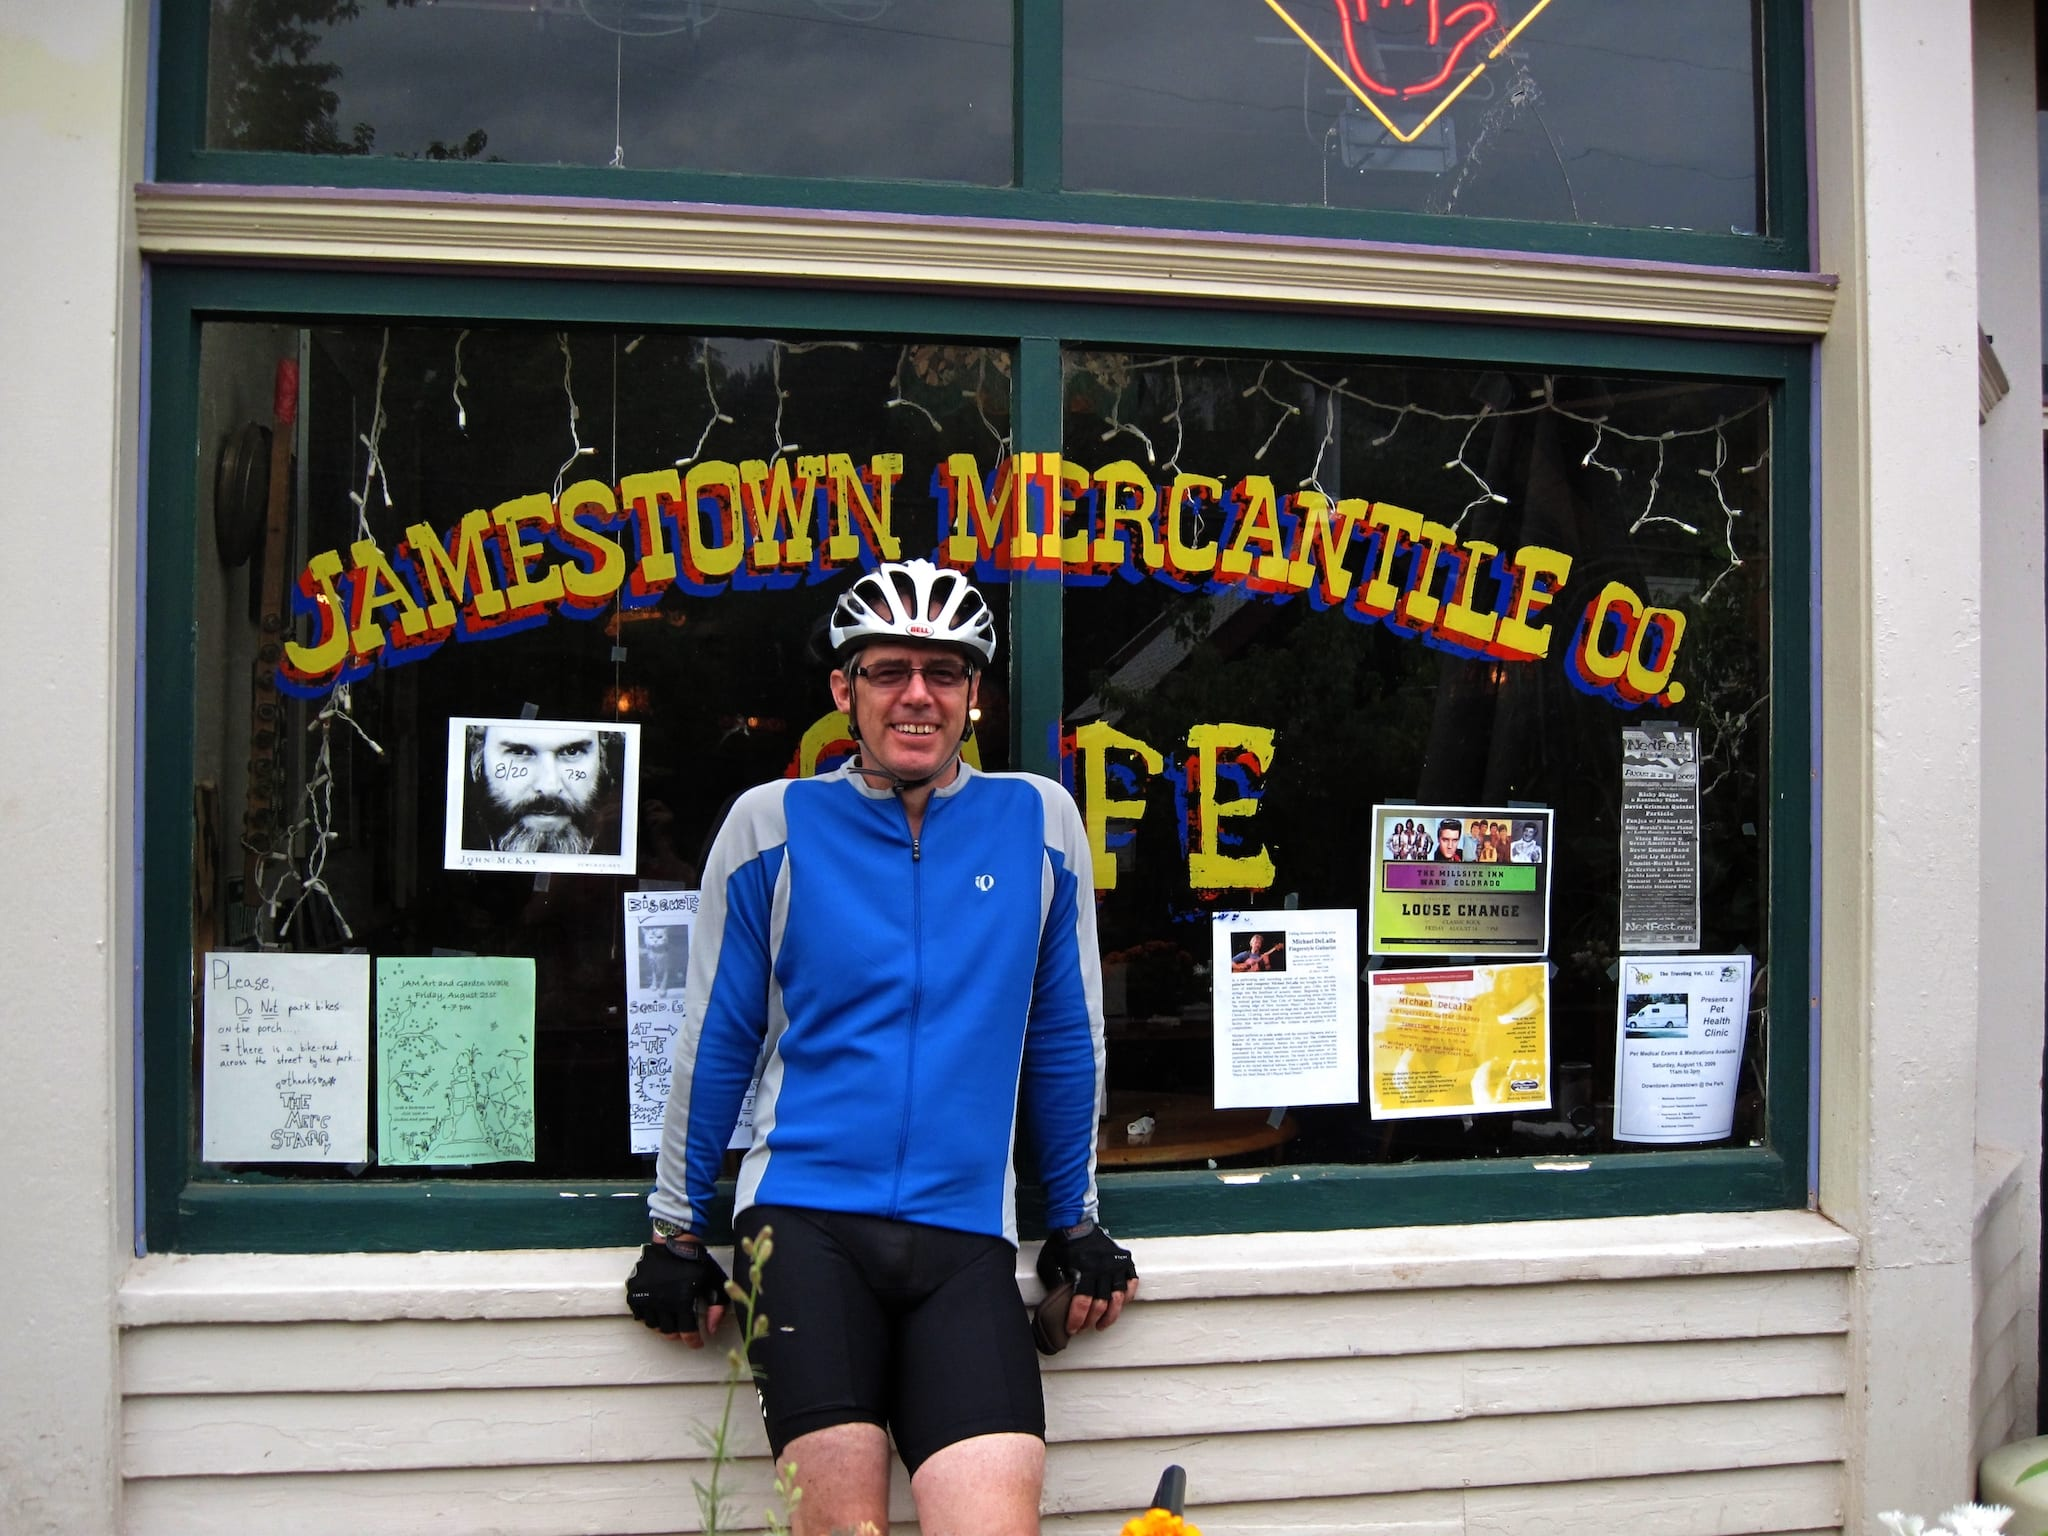 Jamestown Mercantile Company Colorado